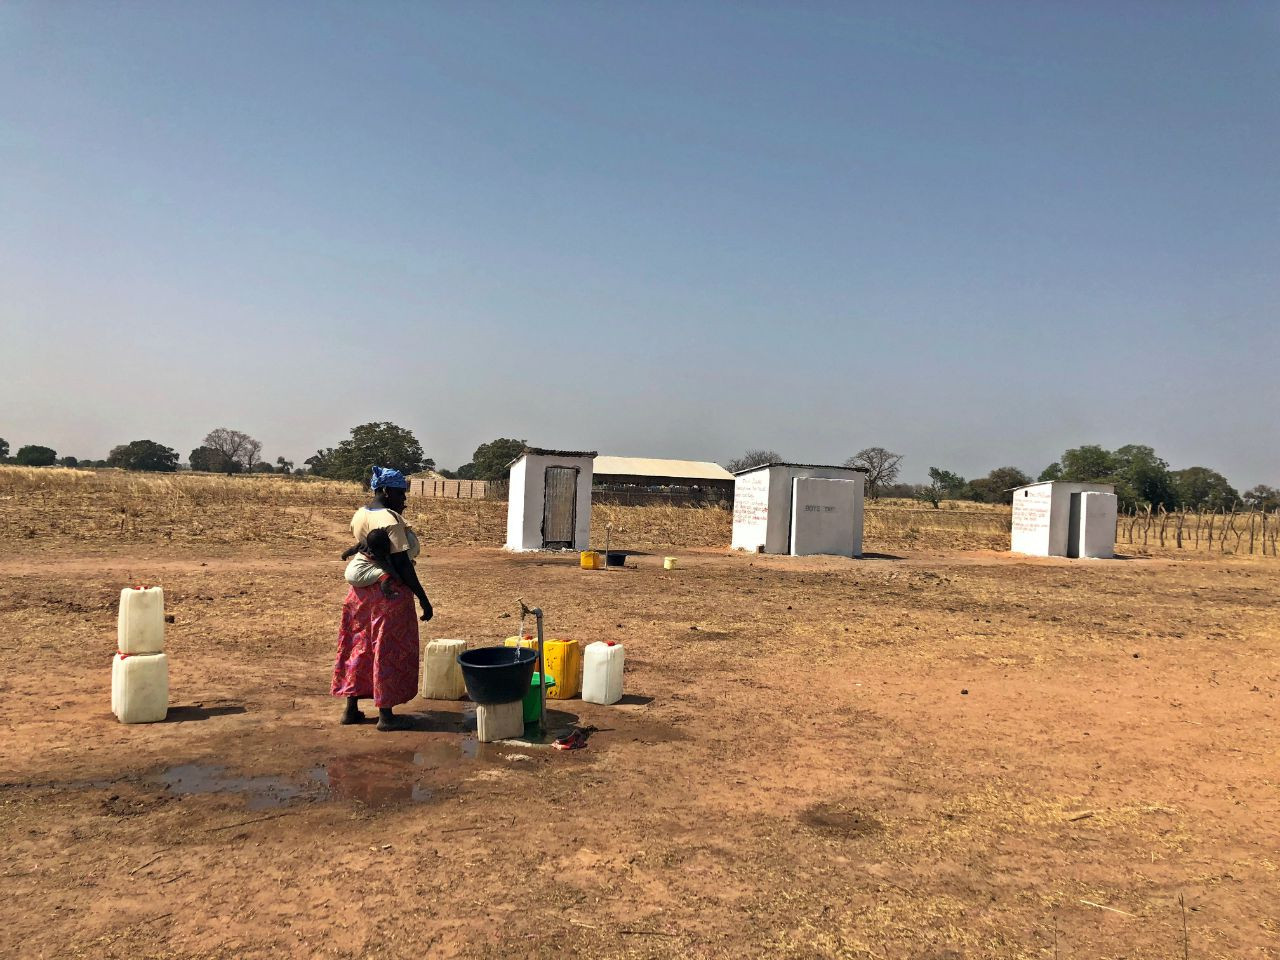 Njie Kunda School Kitchen and Garden Project - The Gambia